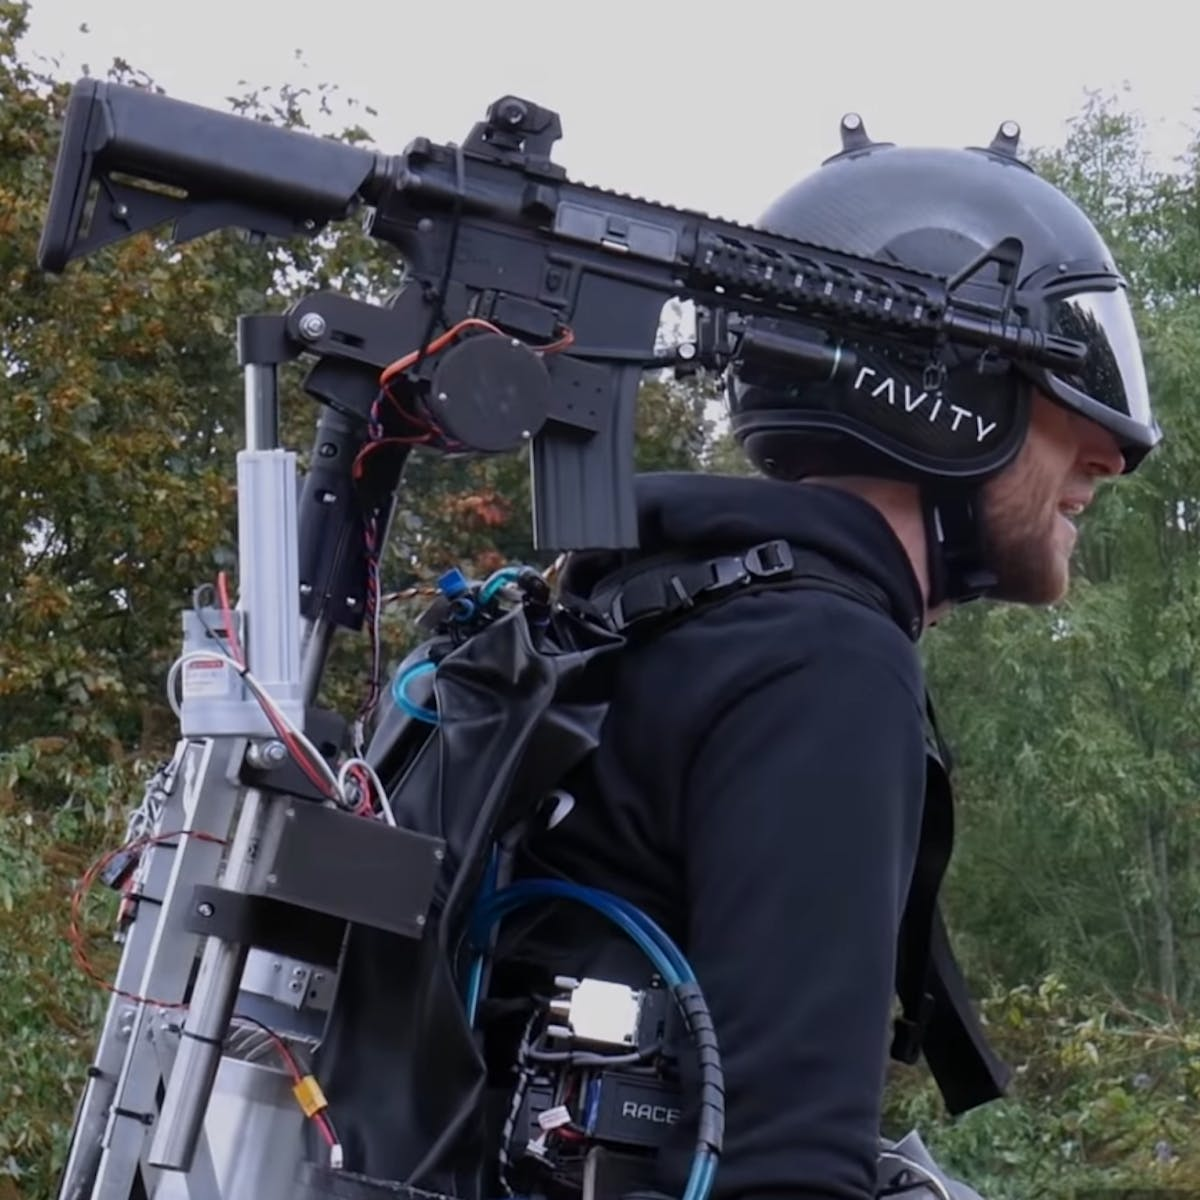 Video of guy who mounted a turret on a jetpack shows a surprising feature